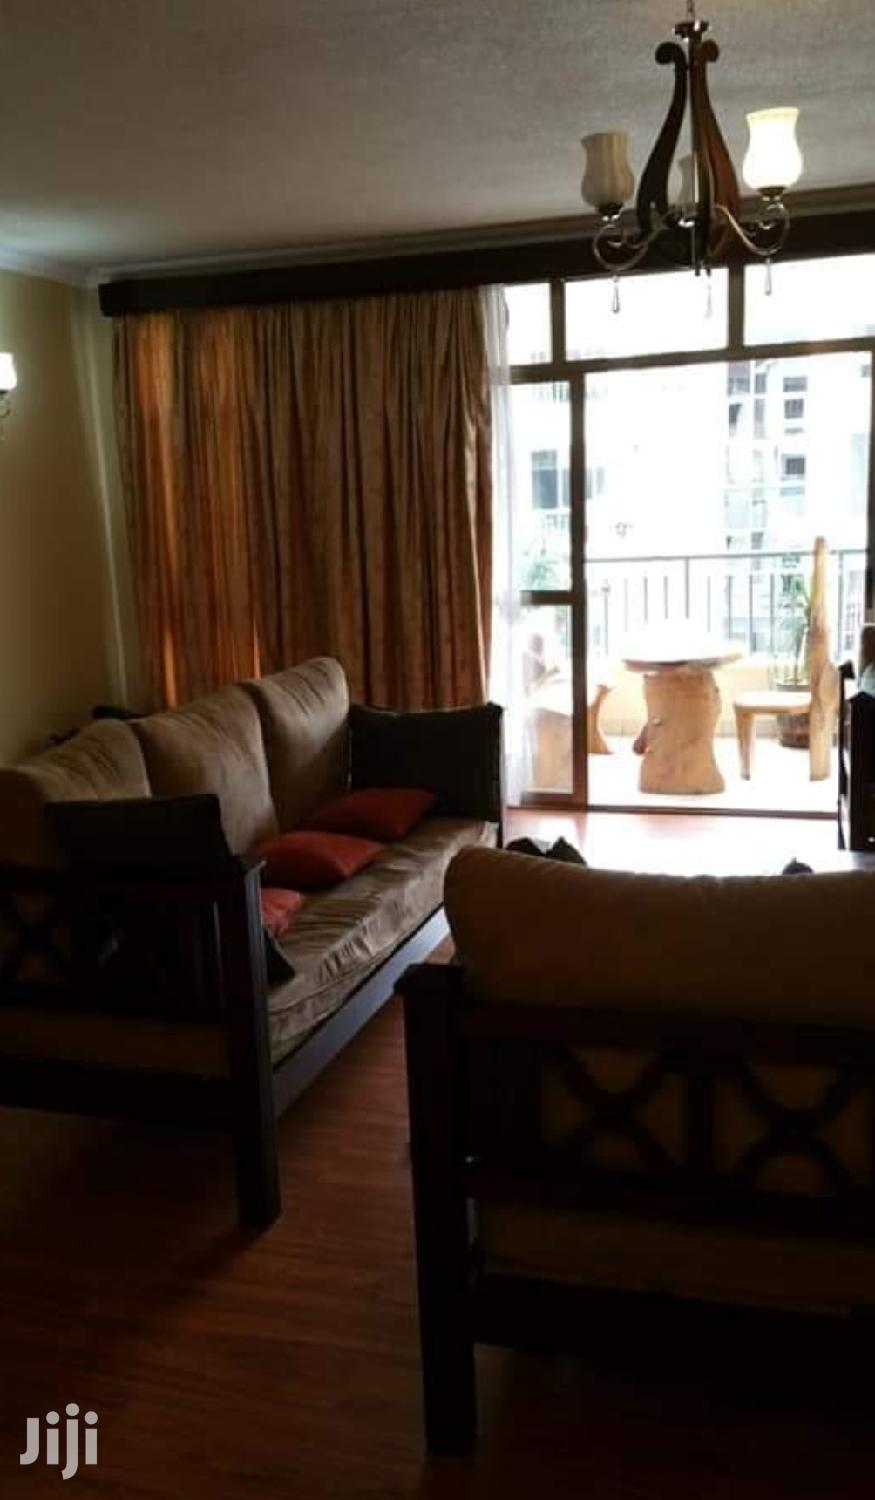 Furnished Two Bedroom Apartment In Ntinda For Rent | Houses & Apartments For Rent for sale in Kampala, Central Region, Uganda